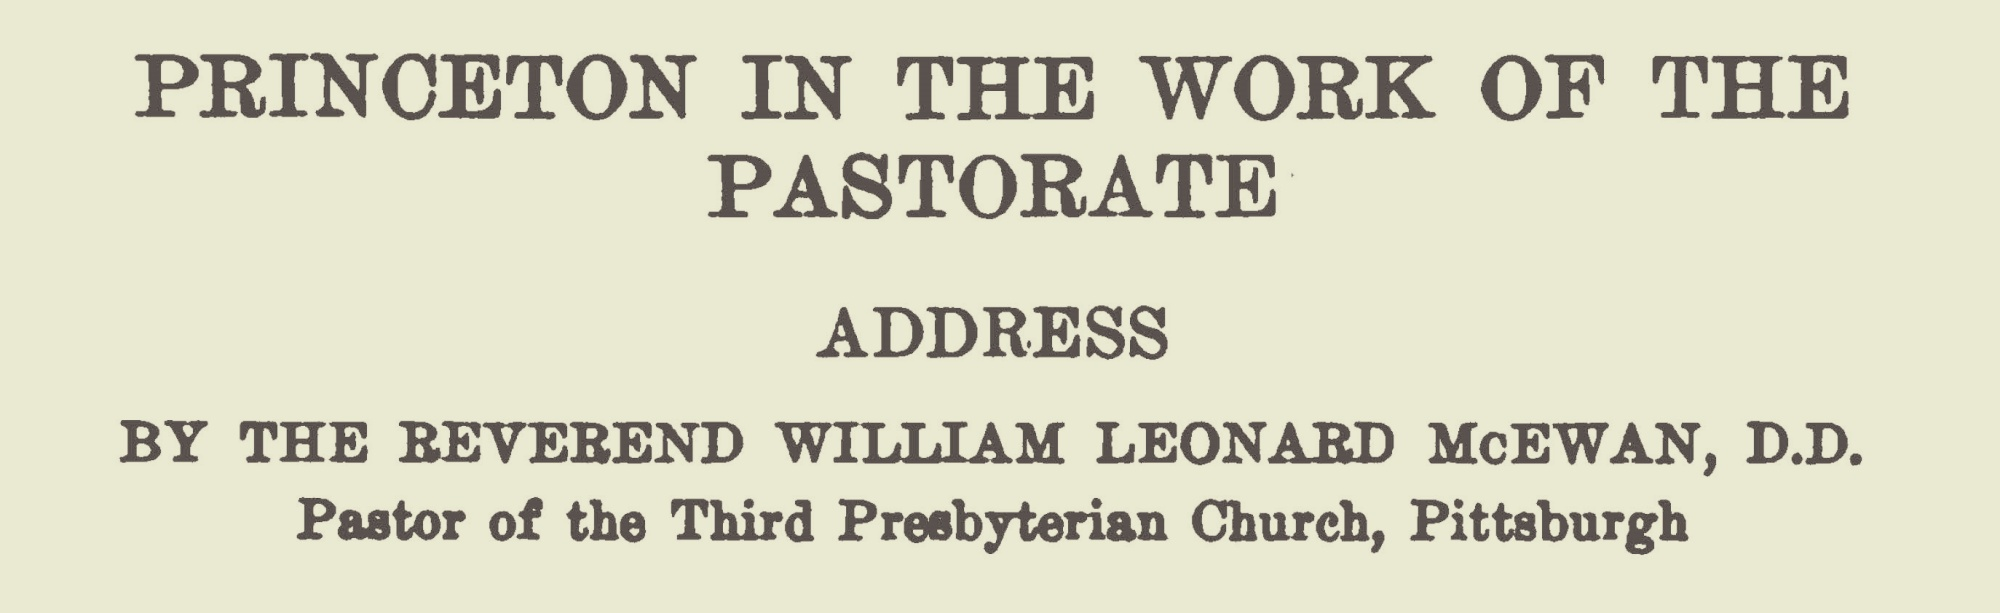 McEwan, William Leonard, Princeton in the Work of the Pastorate Title Page.jpg